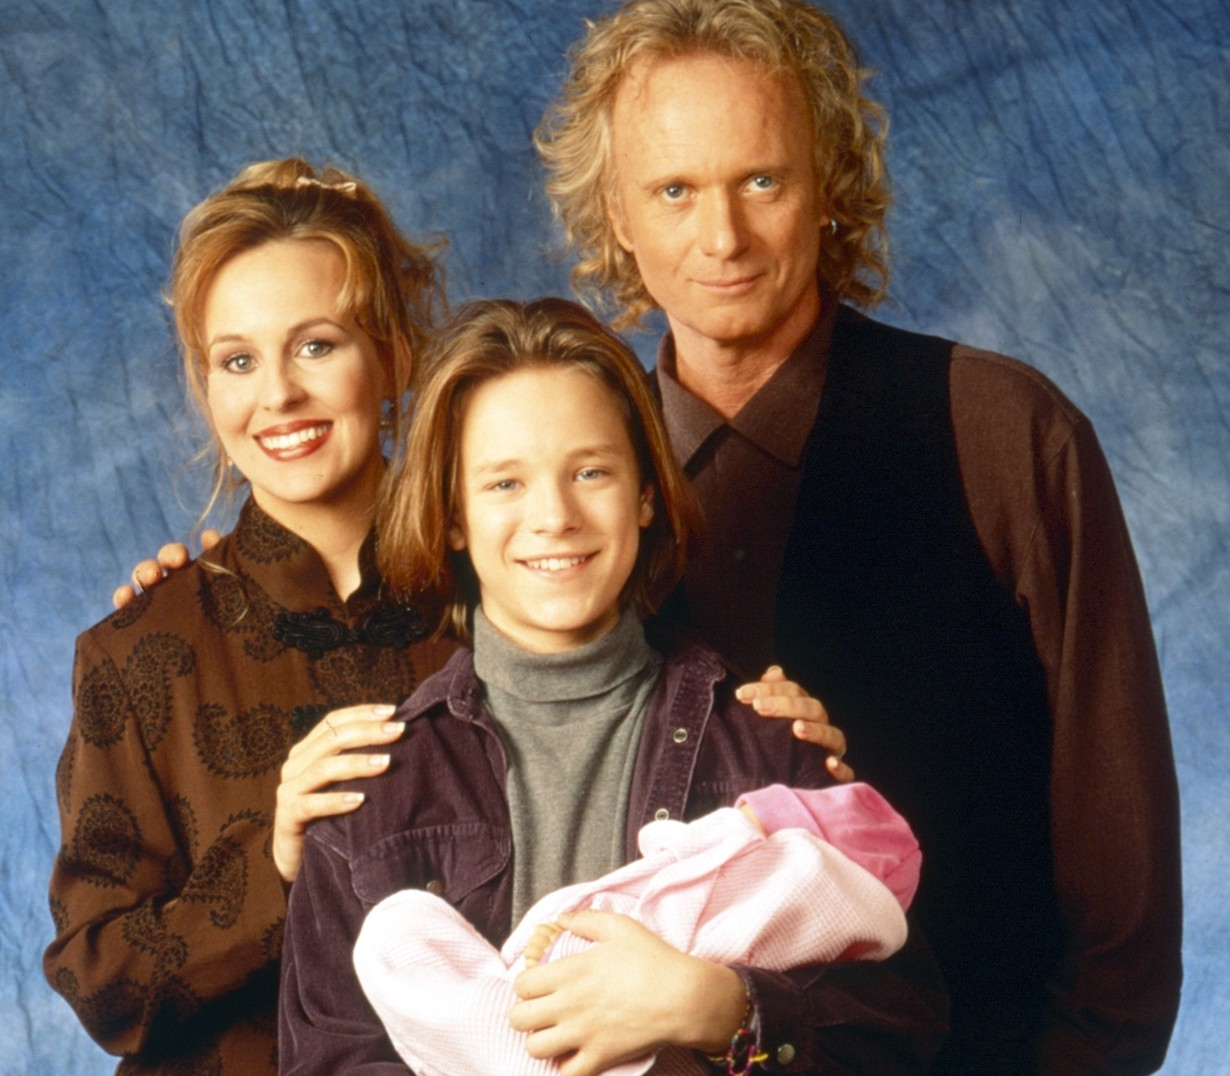 GENERAL HOSPITAL, from left: Genie Francis, Jonathan Jackson, Anthony Geary, 1995, 1963- . ph: Craig Sjodin /© ABC /Courtesy Everett Collection